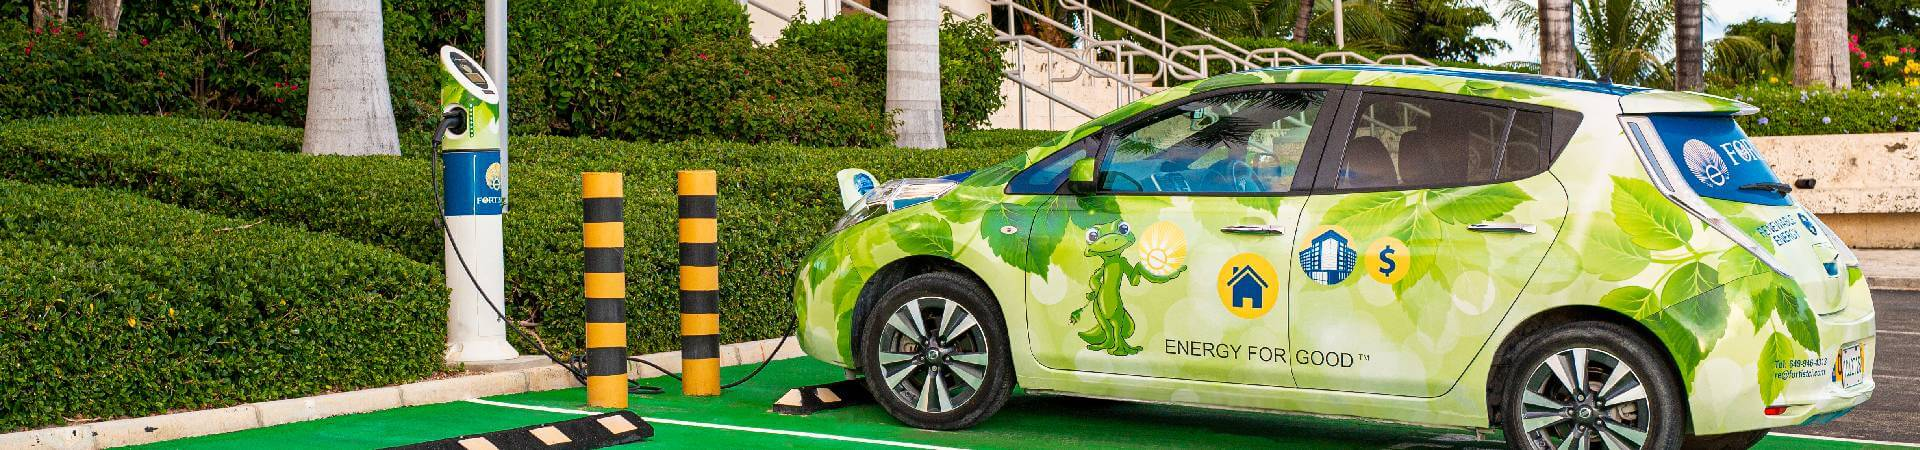 Electric Vehicle Charging Station Pilot Project